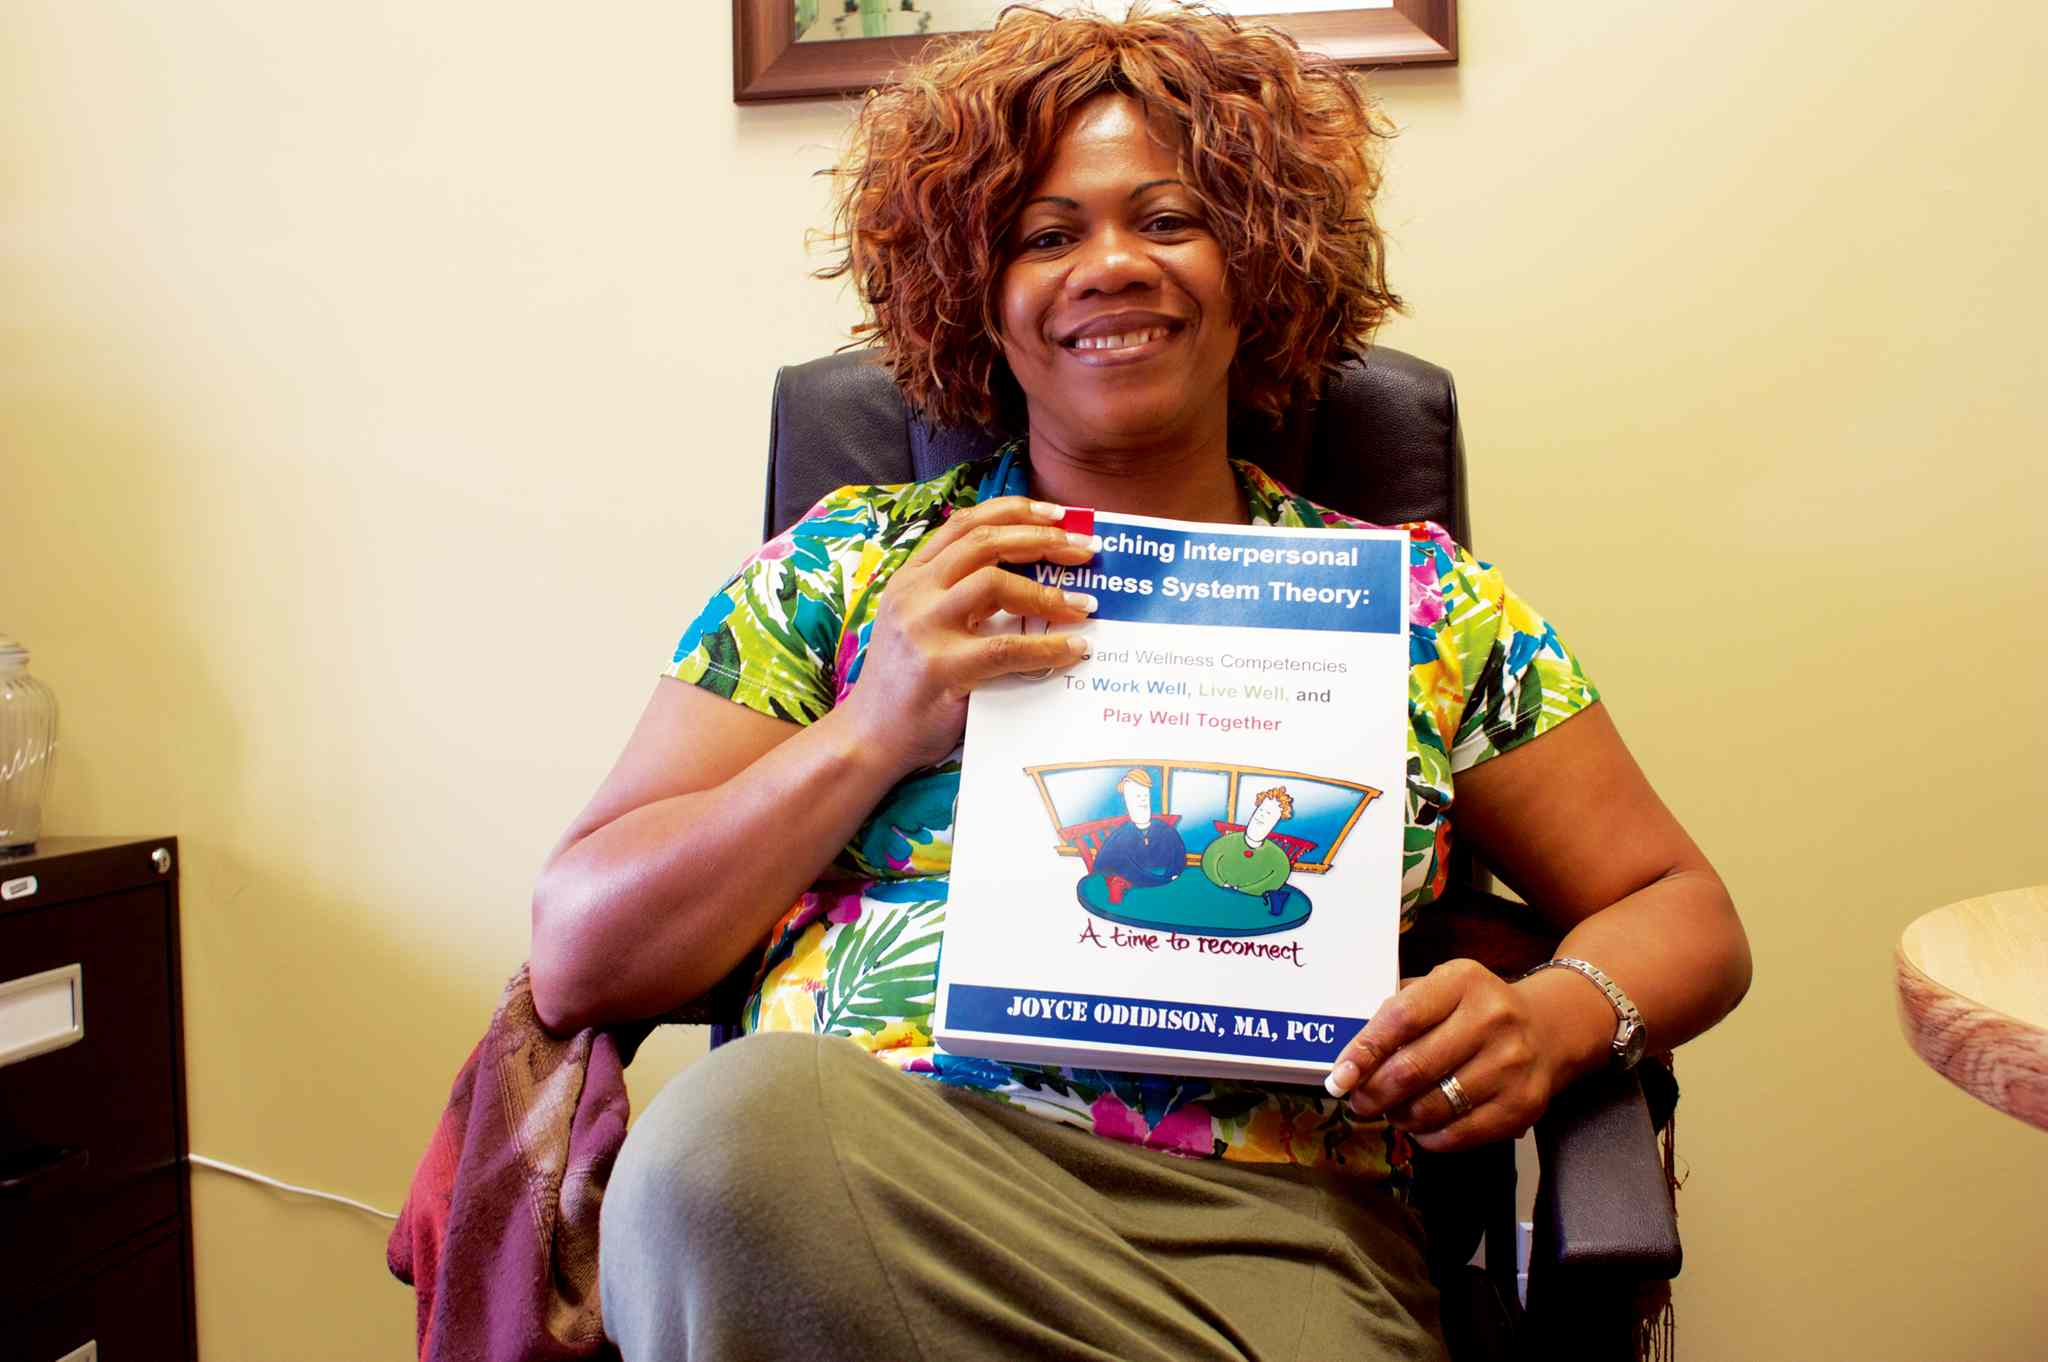 Interpersonal Wellness Services Inc. founder Joyce Odidison is shown with her fifth book, Coaching Interpersonal Wellness System Theory.